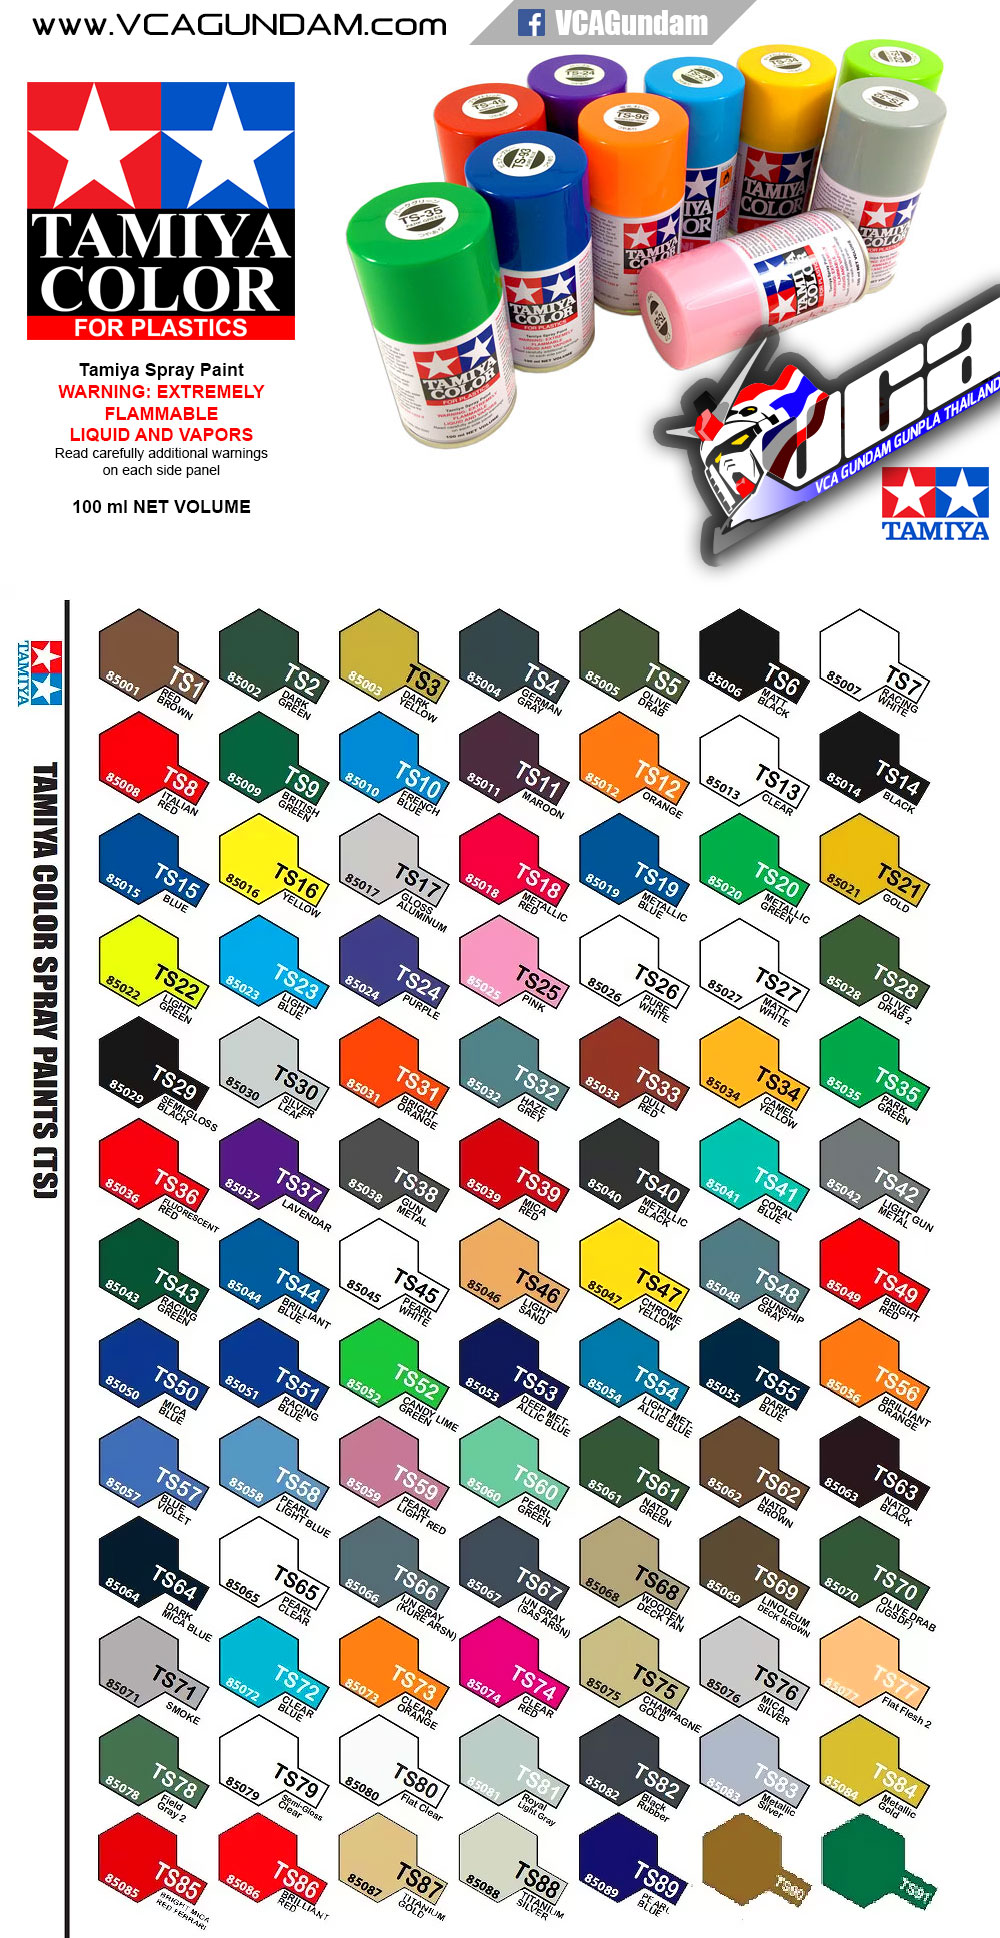 TAMIYA SPRAY PAINT Color Chart